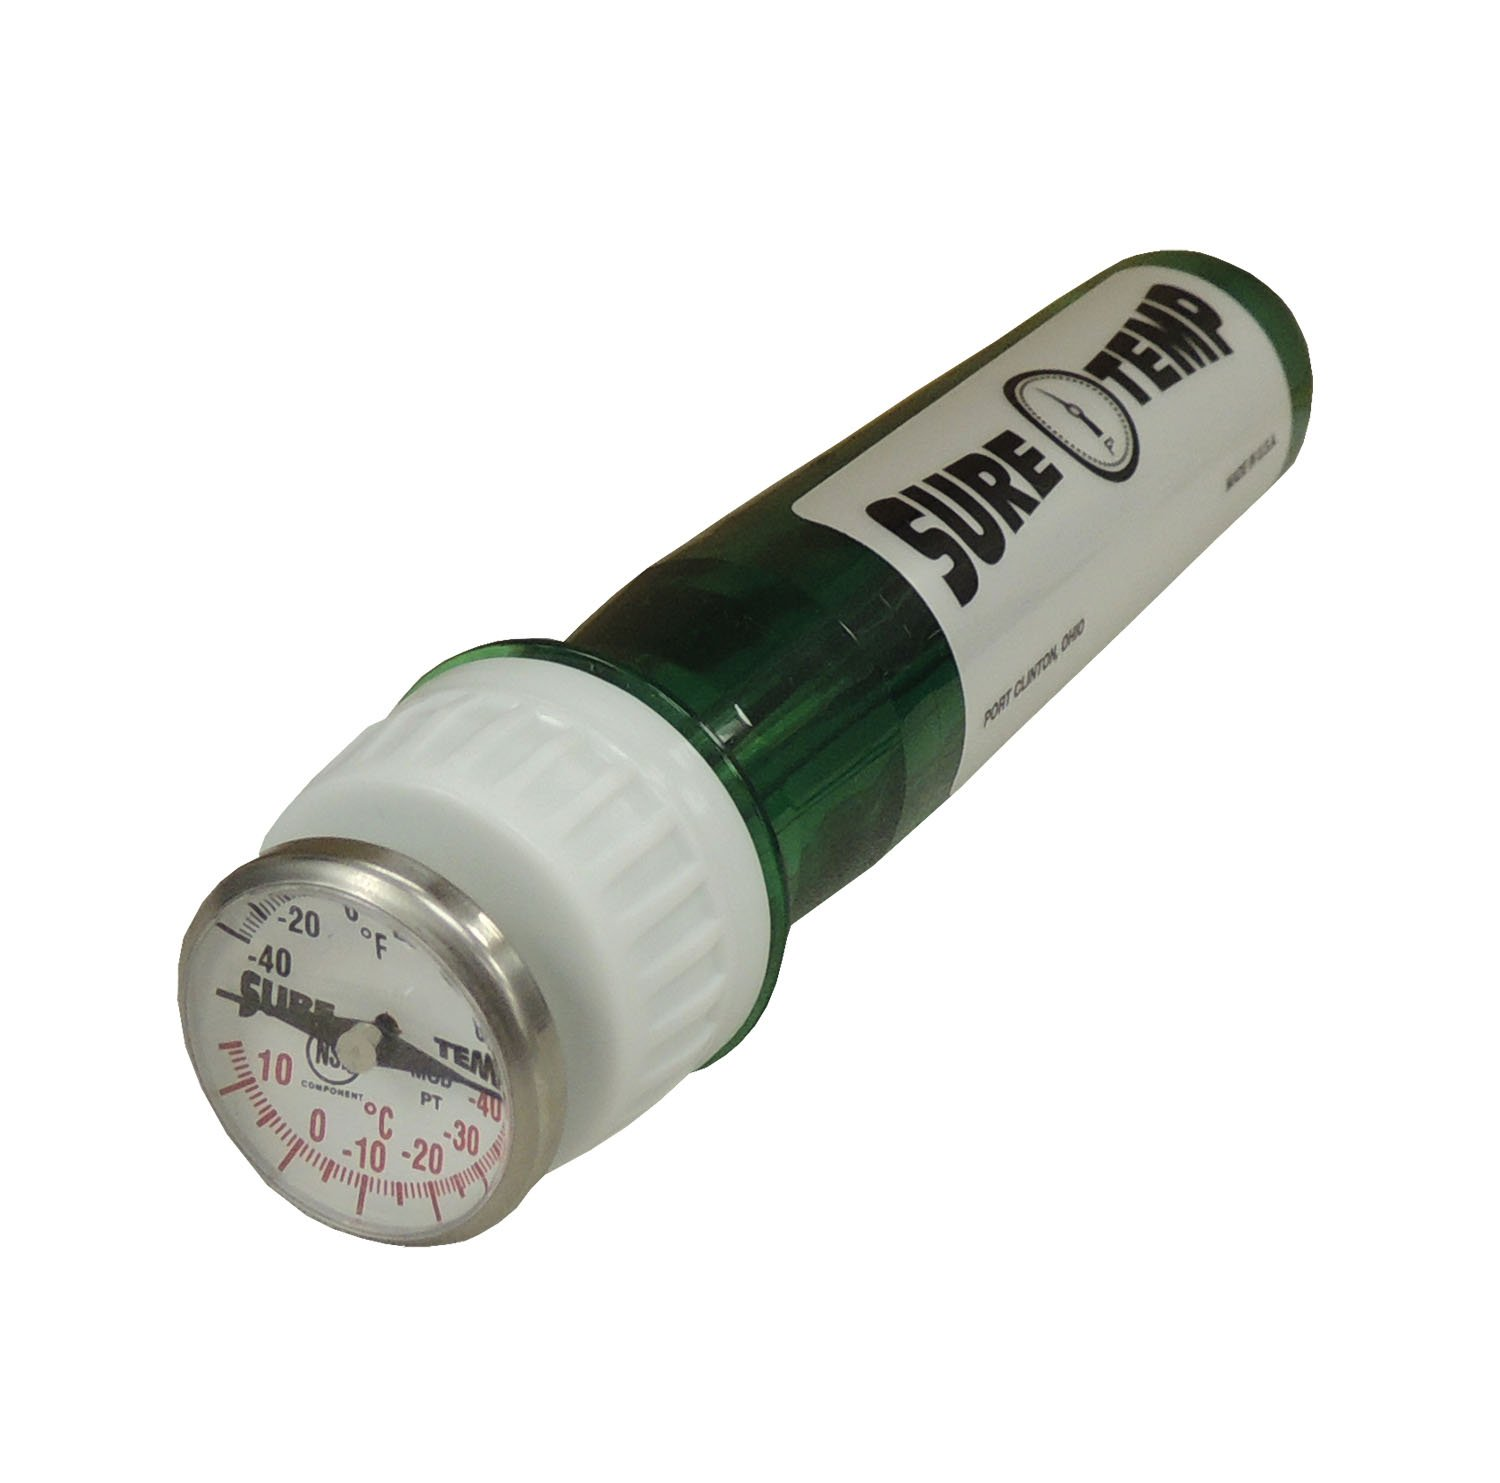 Supco ST1236-31 Sure Temp Thermometer